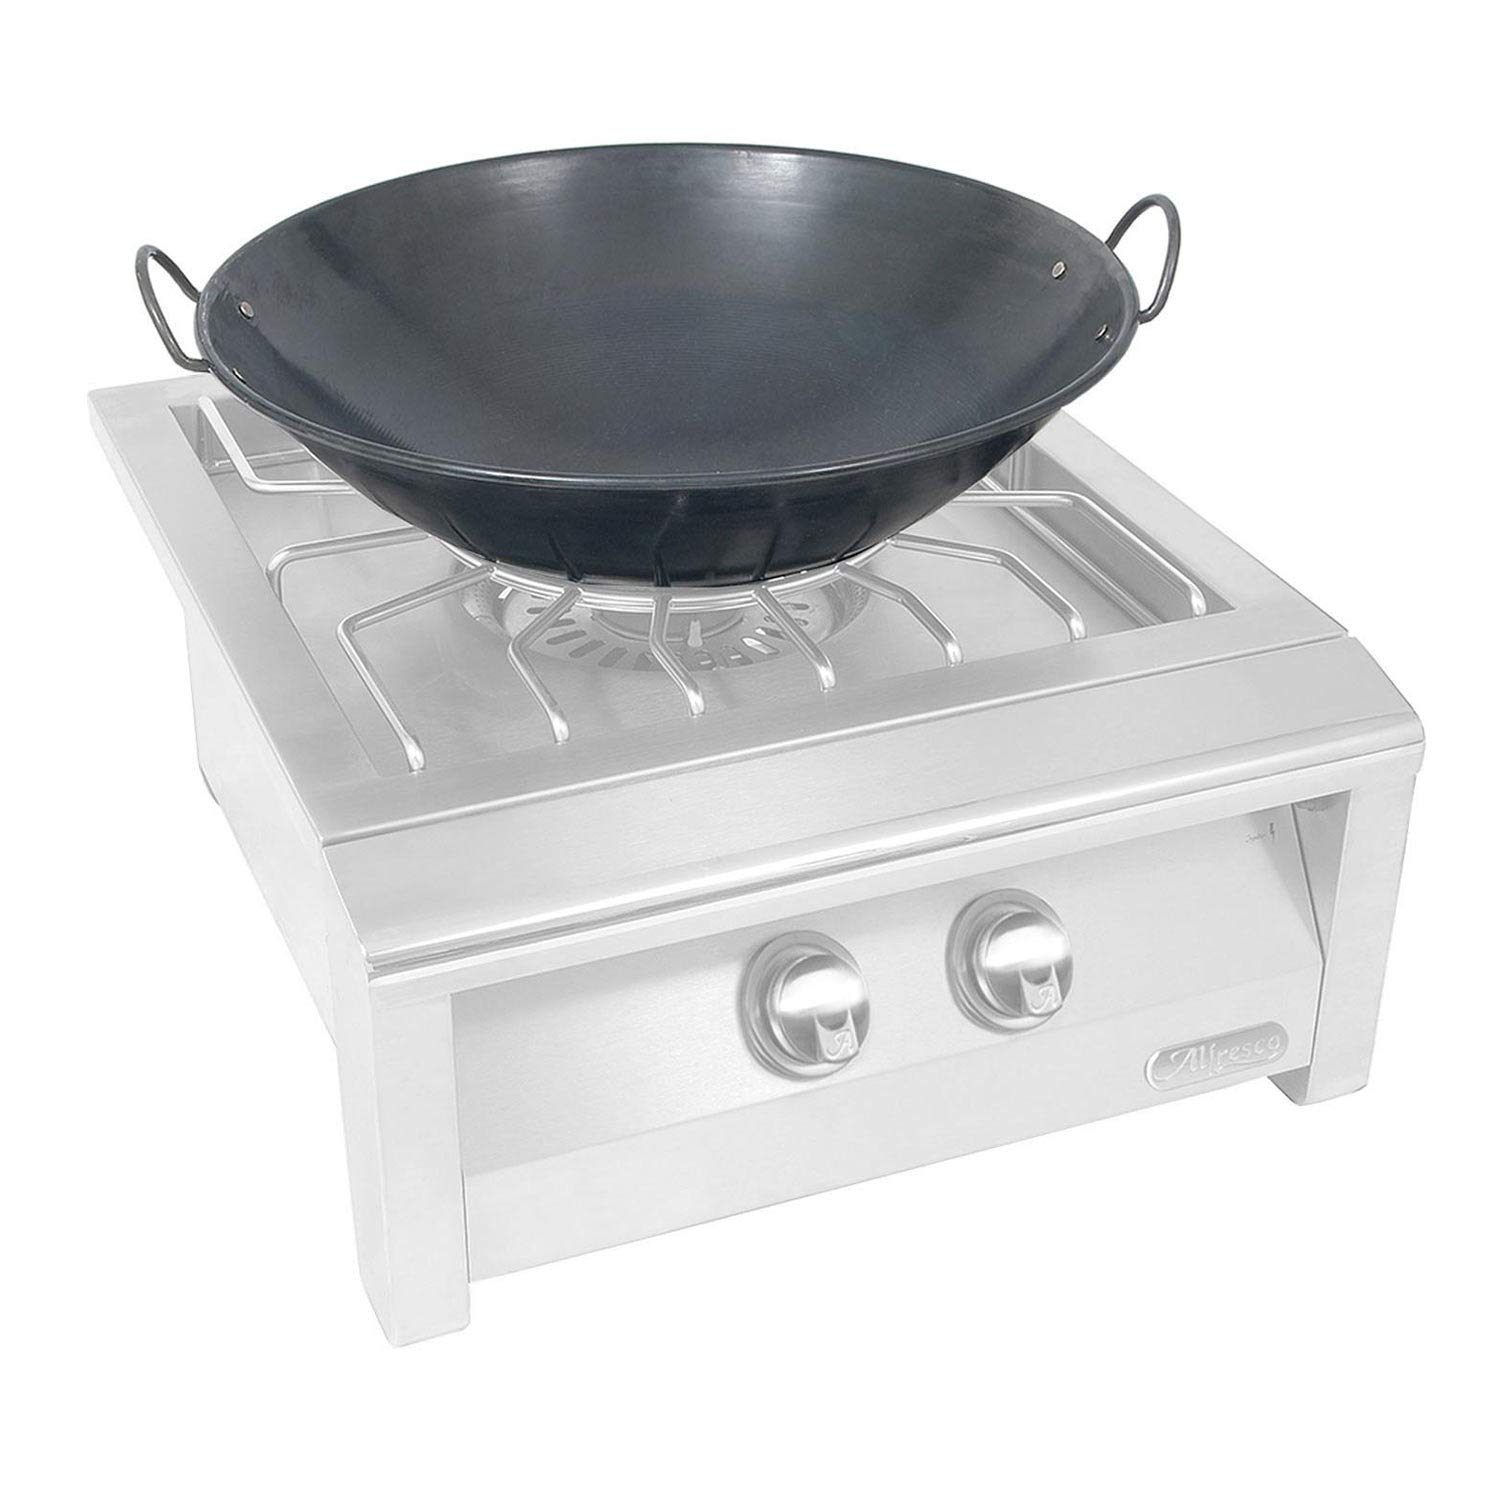 Alfresco Commercial Wok (AXEVP-Wok), 22-Inch by Al Fresco